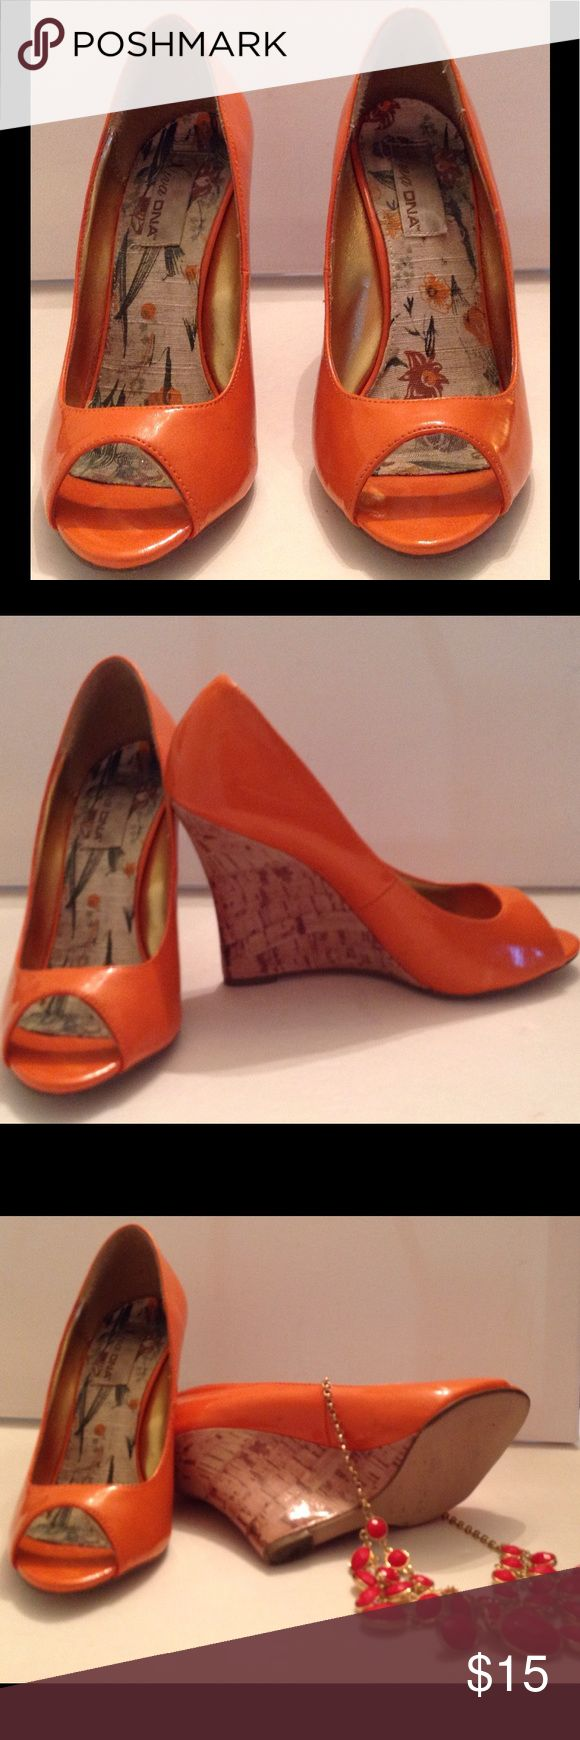 Summer Orange Diva DNA Heels Summer orange wedges with open toe in great condition. Patten leather material on the outside.  Great shoes for any ocassion. Diva DNA Shoes Wedges